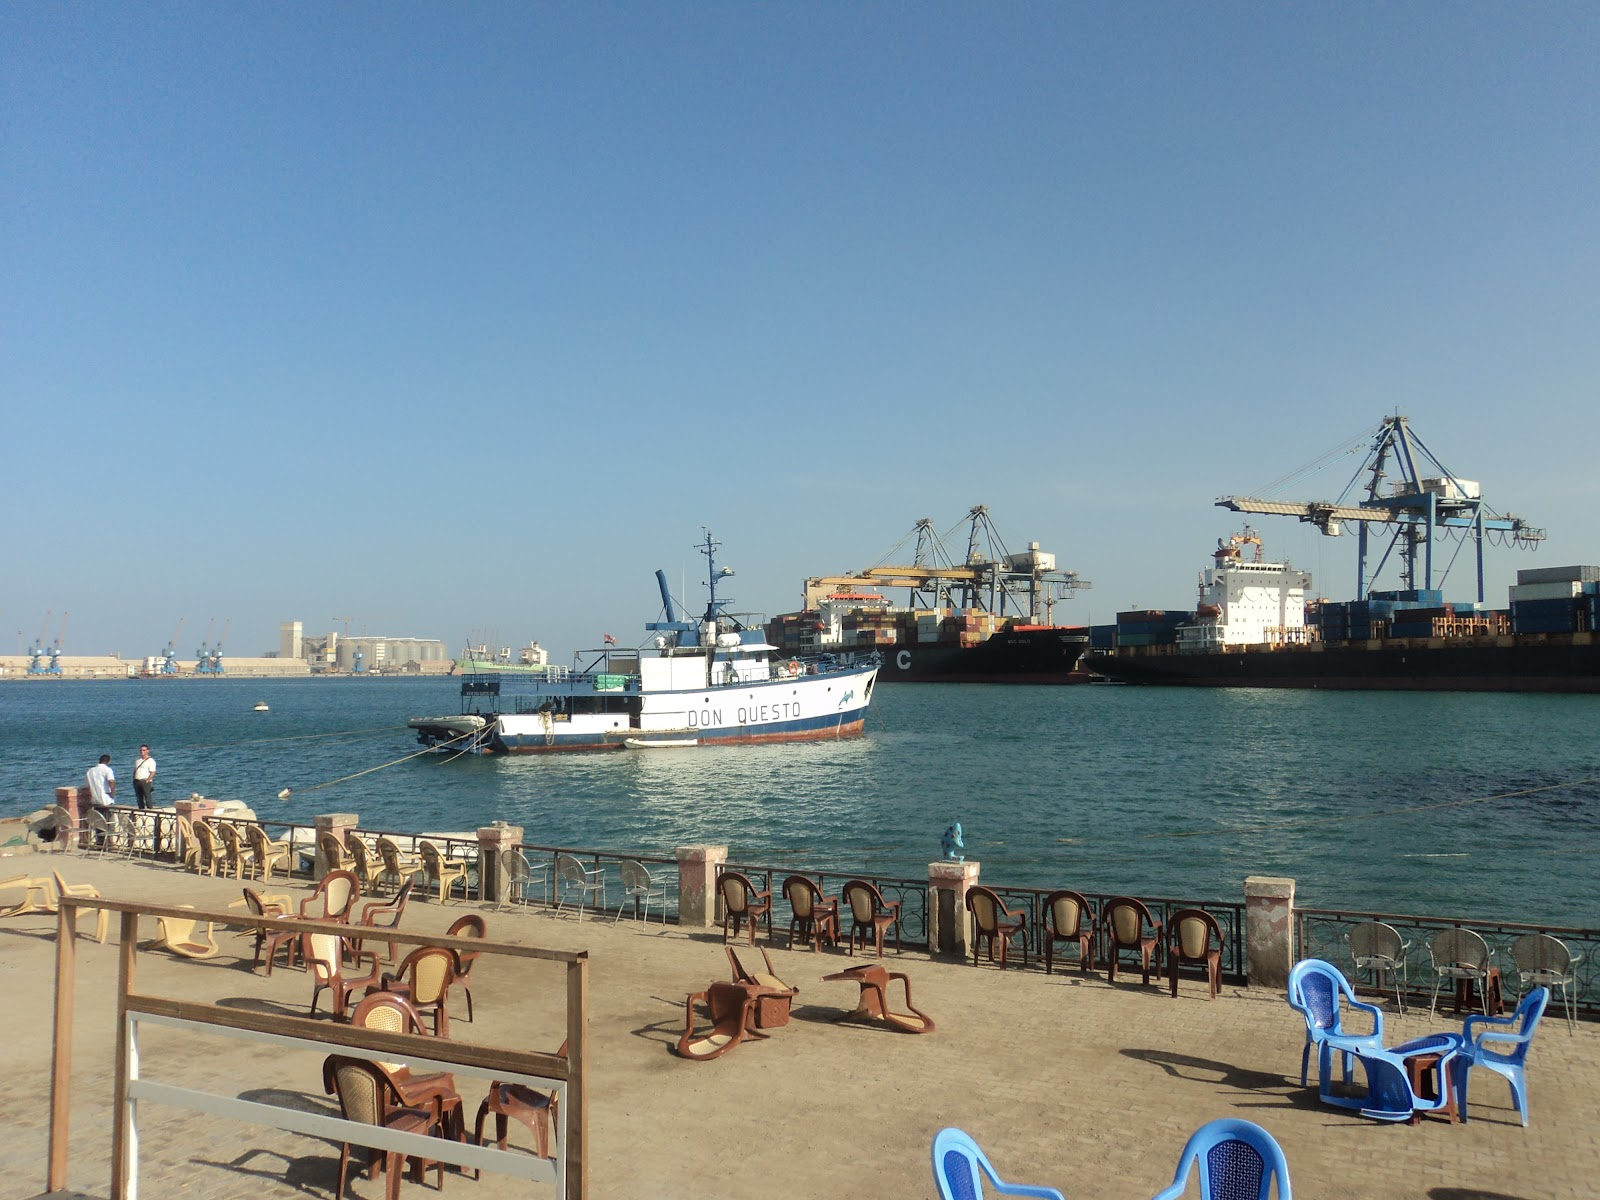 A teachers life in Khartoum: A week in Port Sudan